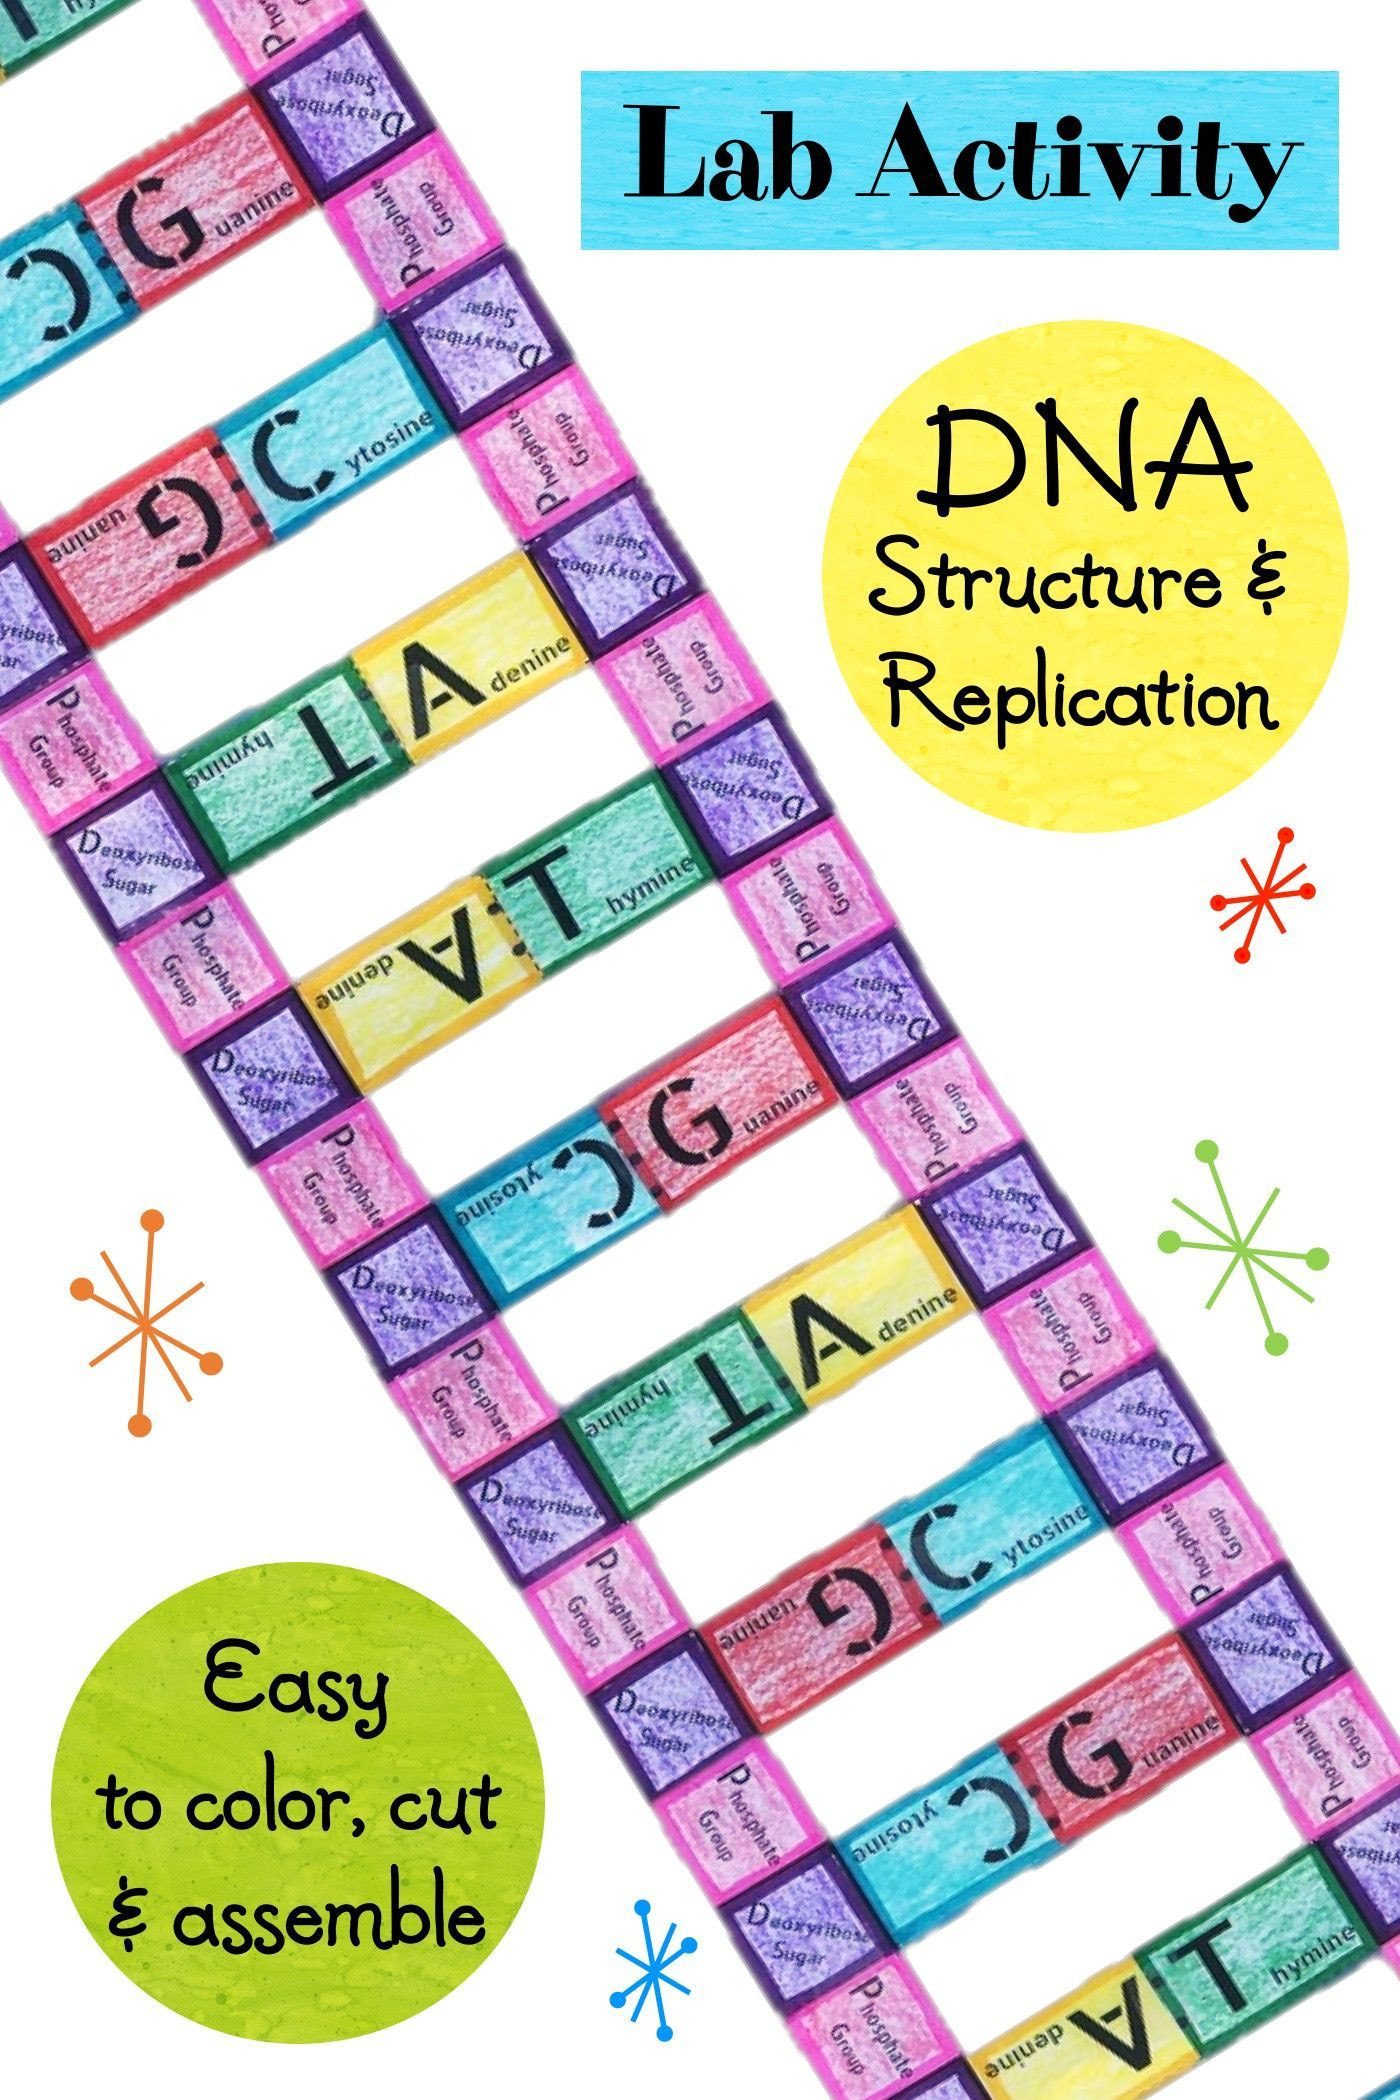 Dna Structure and Replication Worksheet Lab Activity Dna Structure and Replication